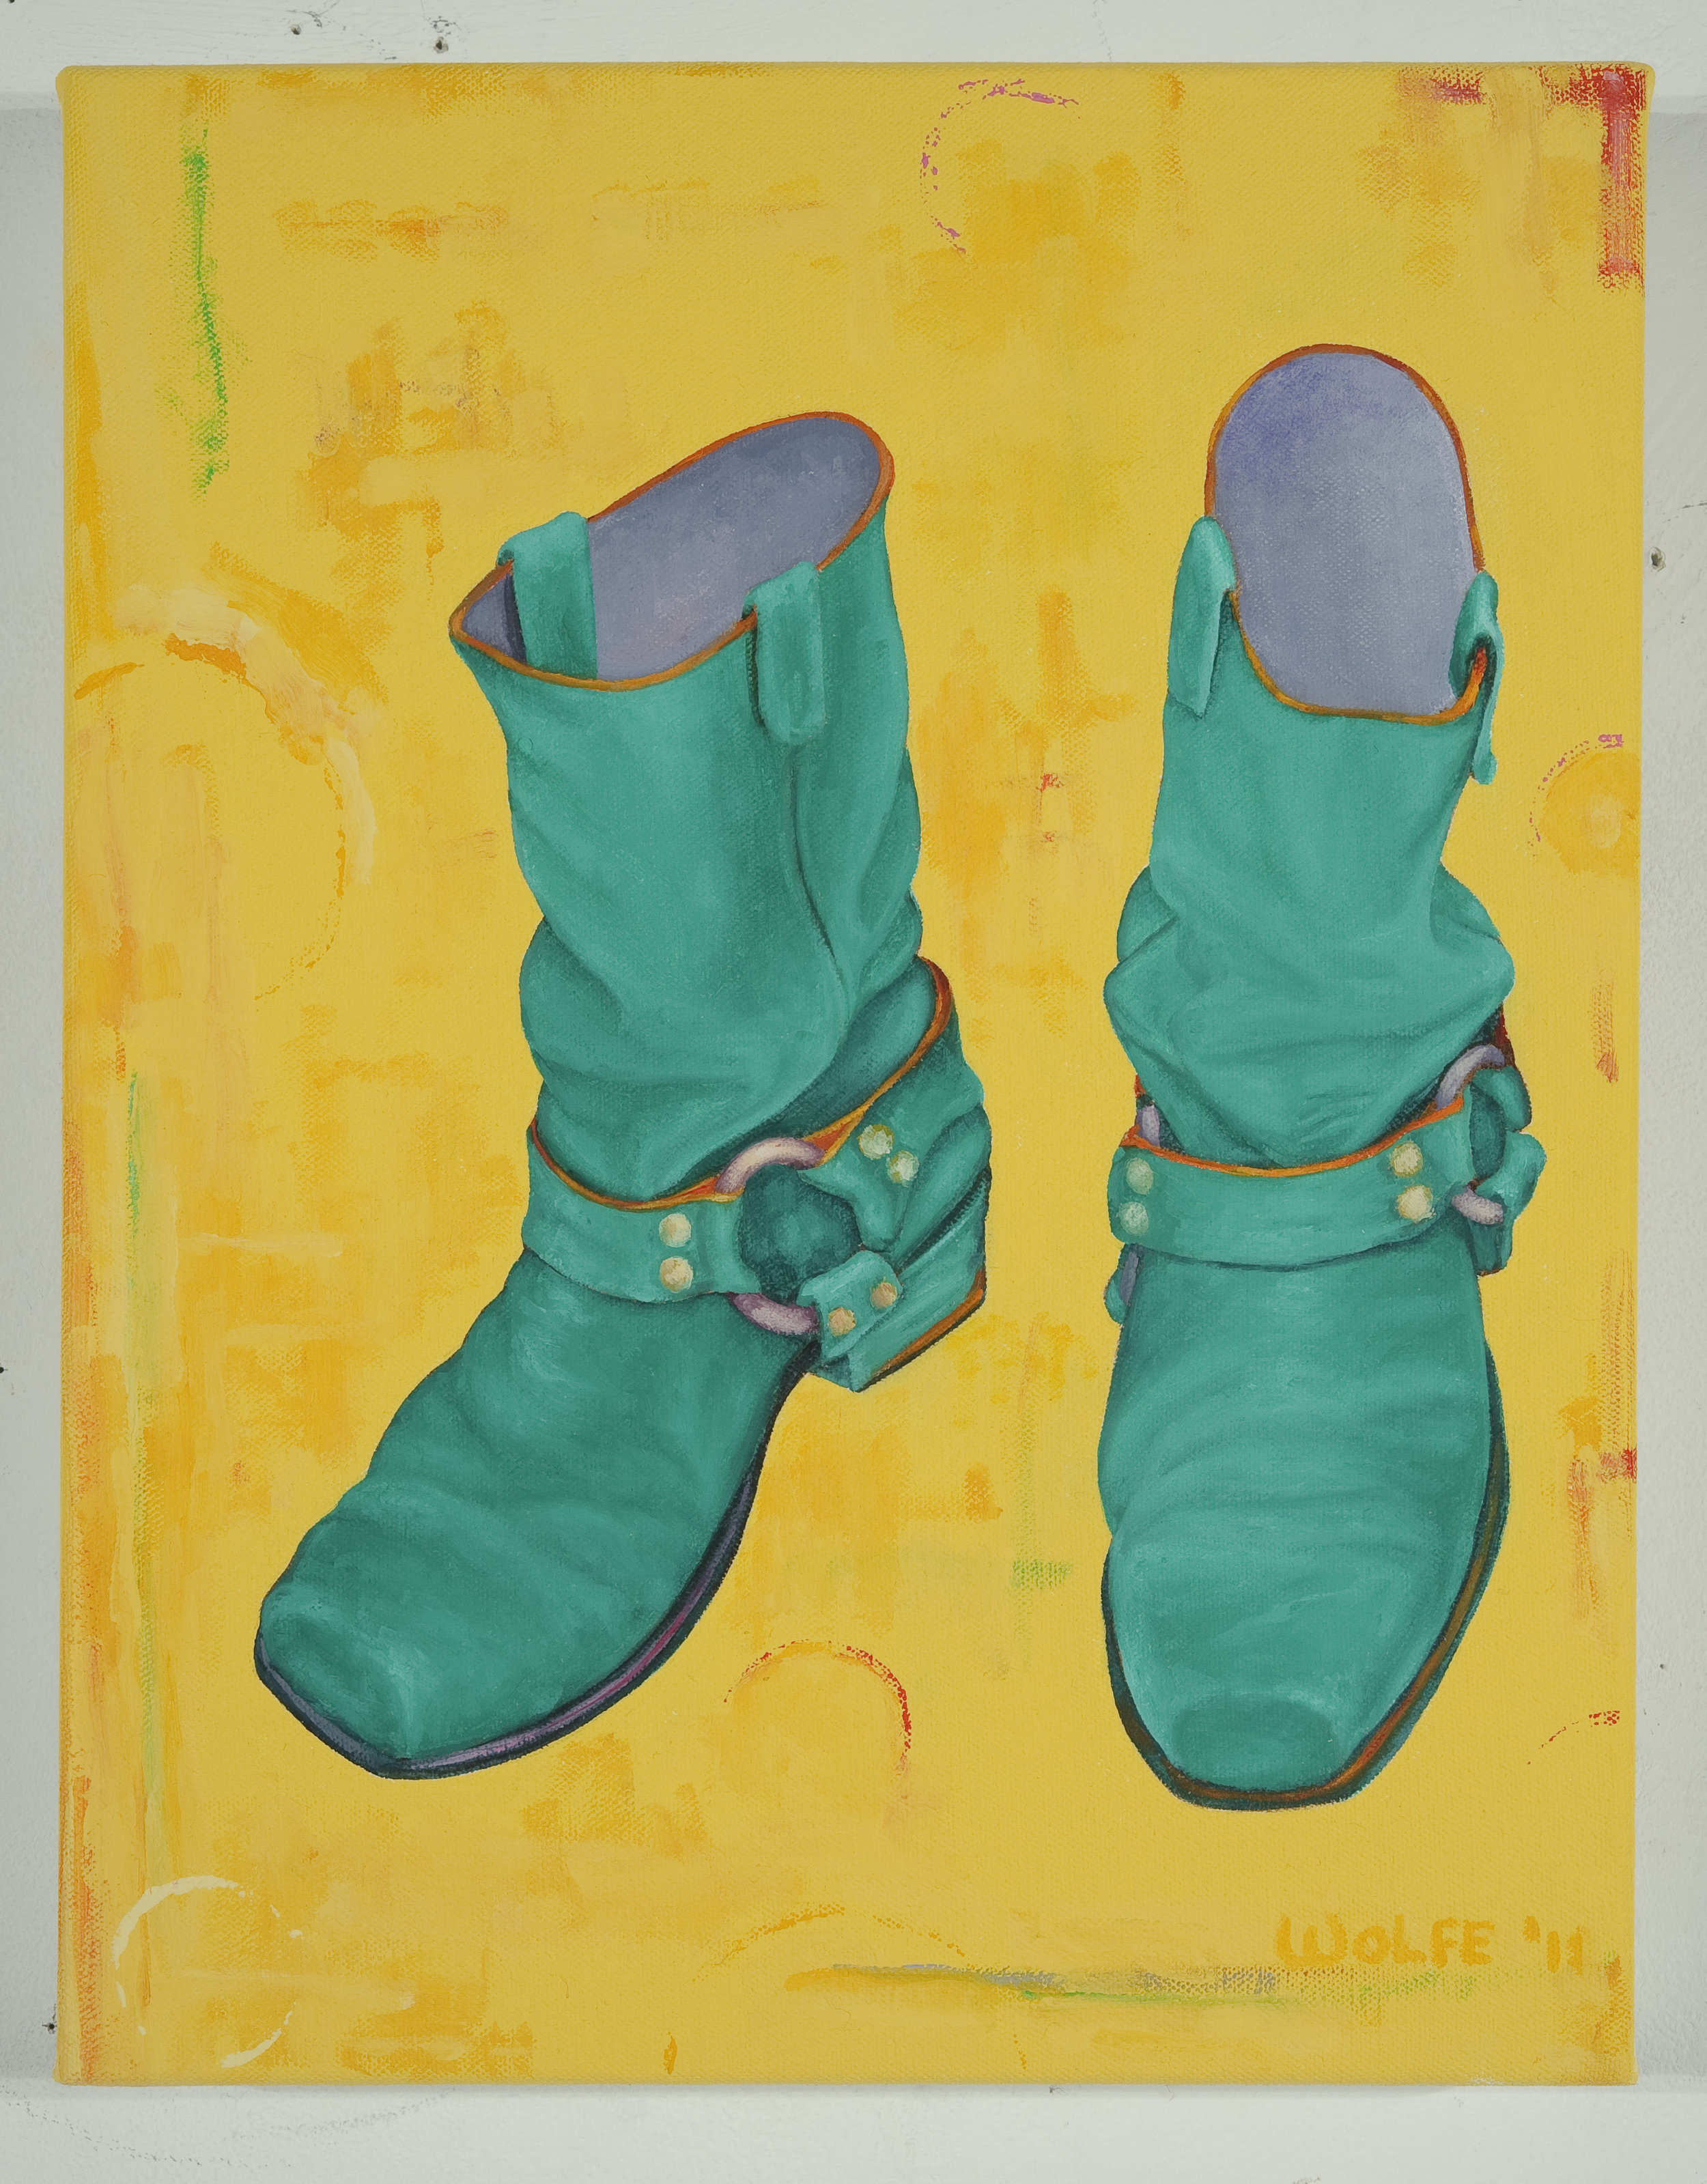 "Boots 4, 2011    Oil on canvas  14"" x 11""  $800  Click image to enlarge ⦿  Inquire"